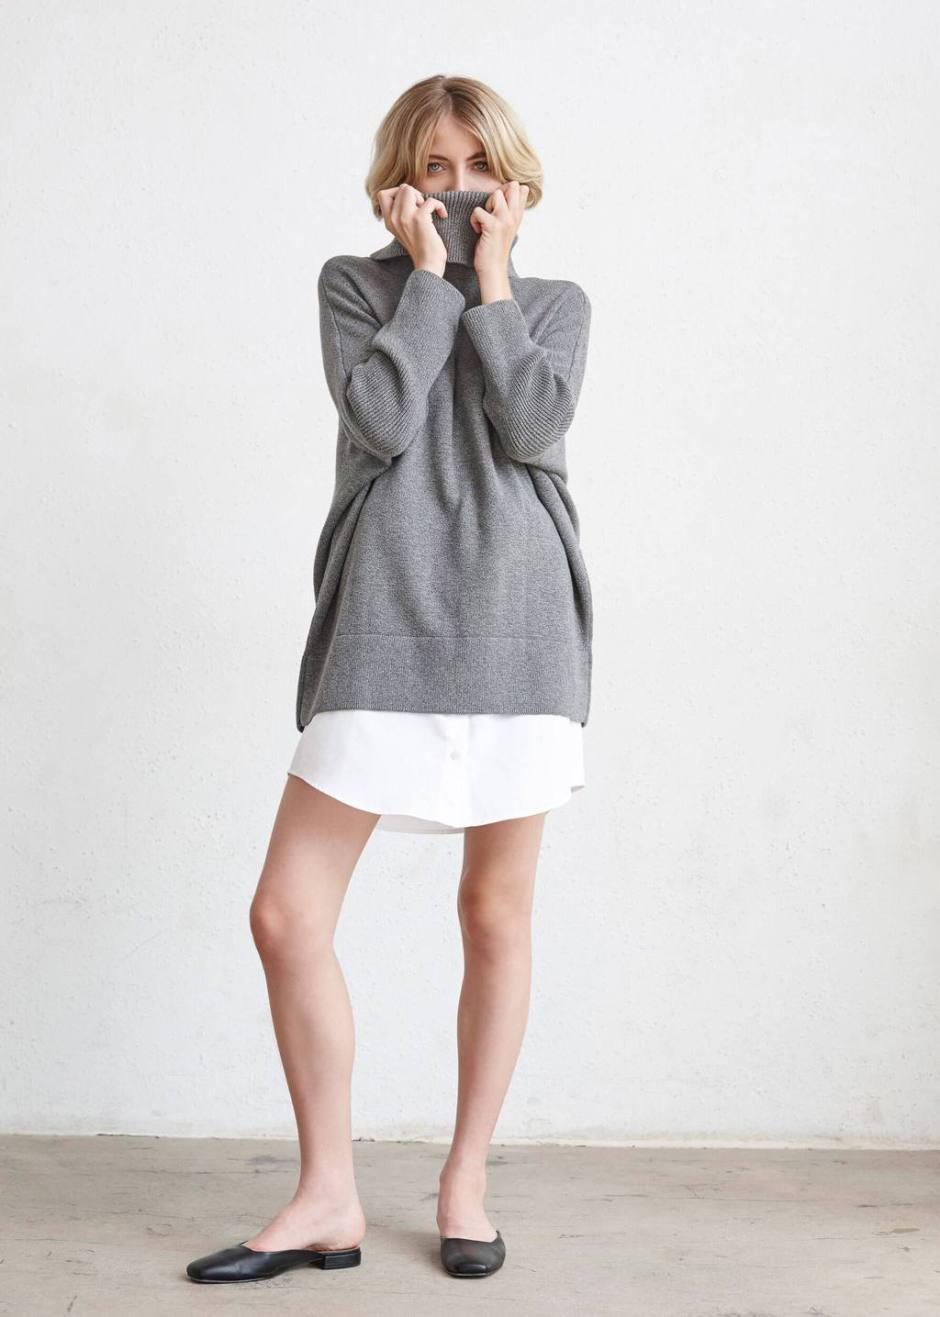 0d111321fd5362 This sweater is available here in gray and black, and is part of a very  cool mini-collection that is designed to be worn together in a ton of ...